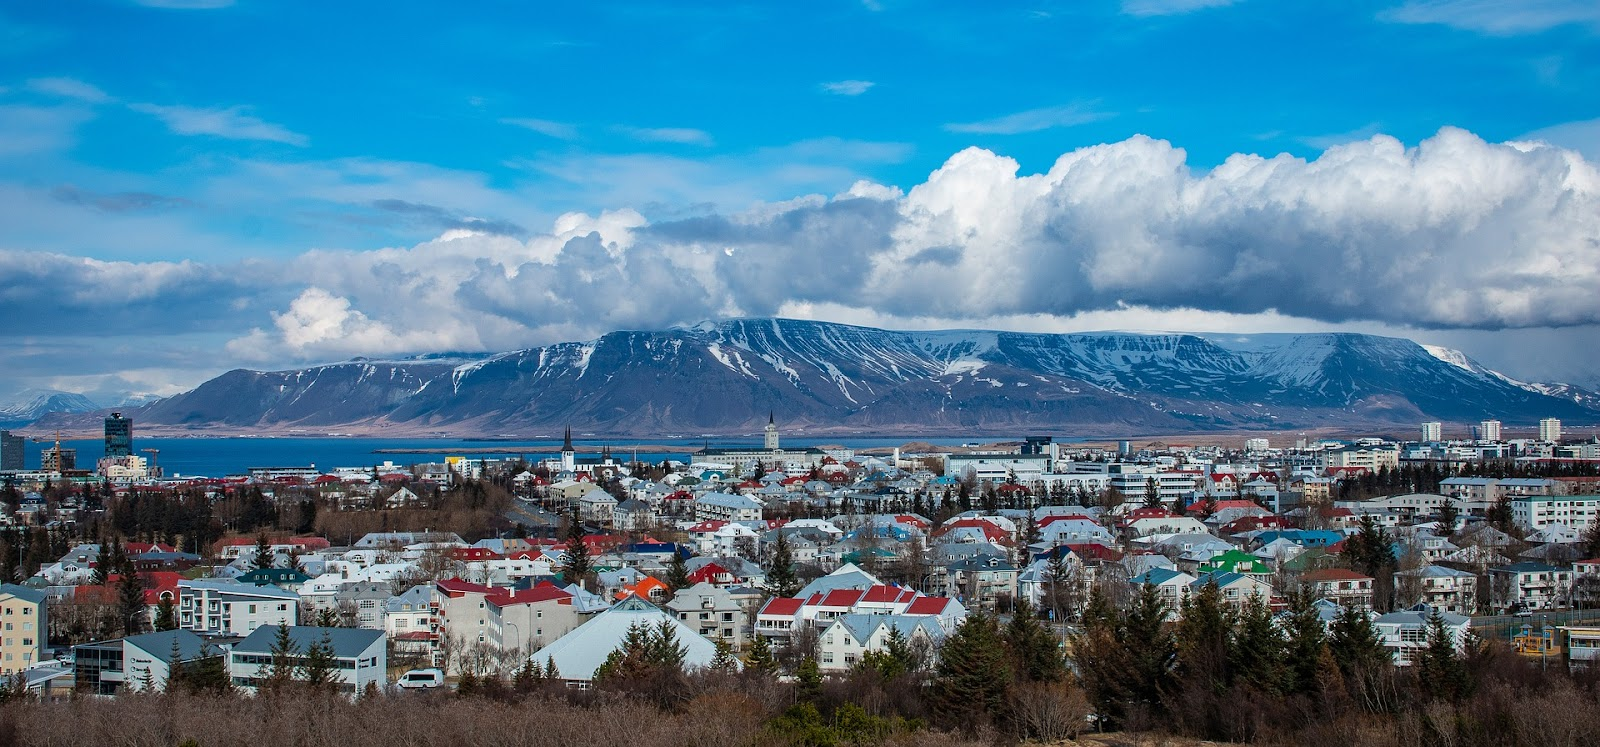 reykjavik iceland calm town skyline panoramic view from distance with large mountain and water in background on a sunny day